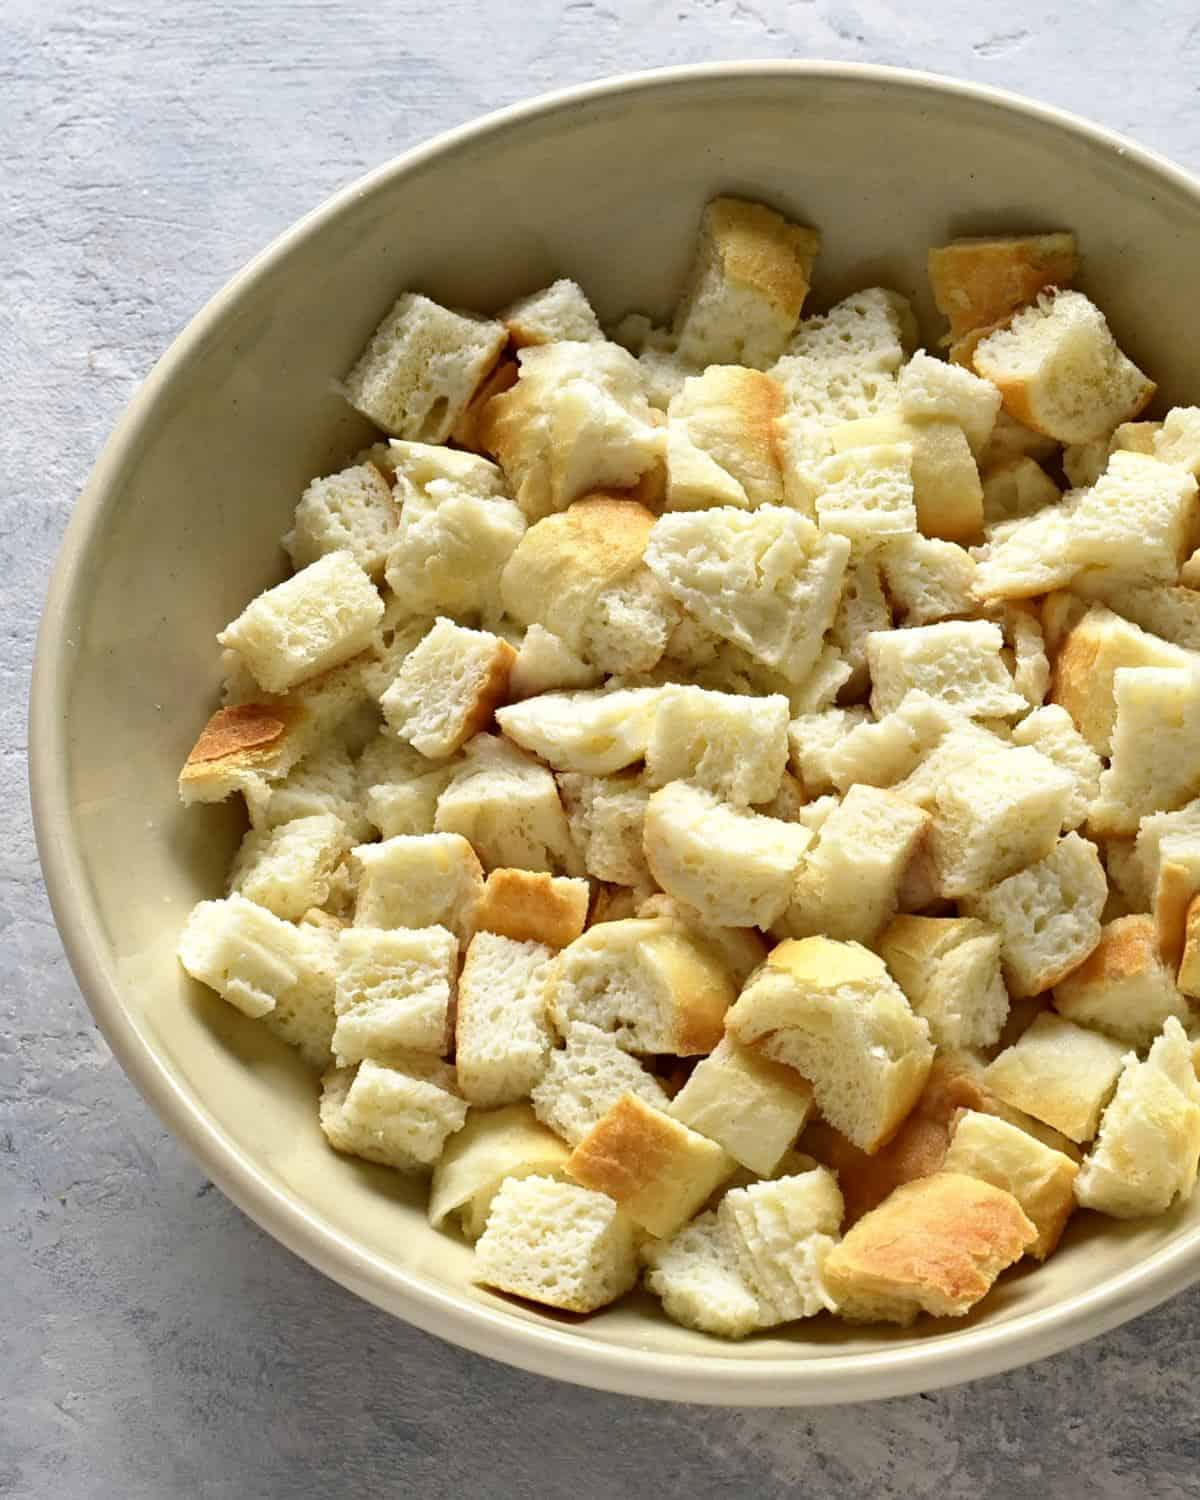 cubed white bread soaked in milk